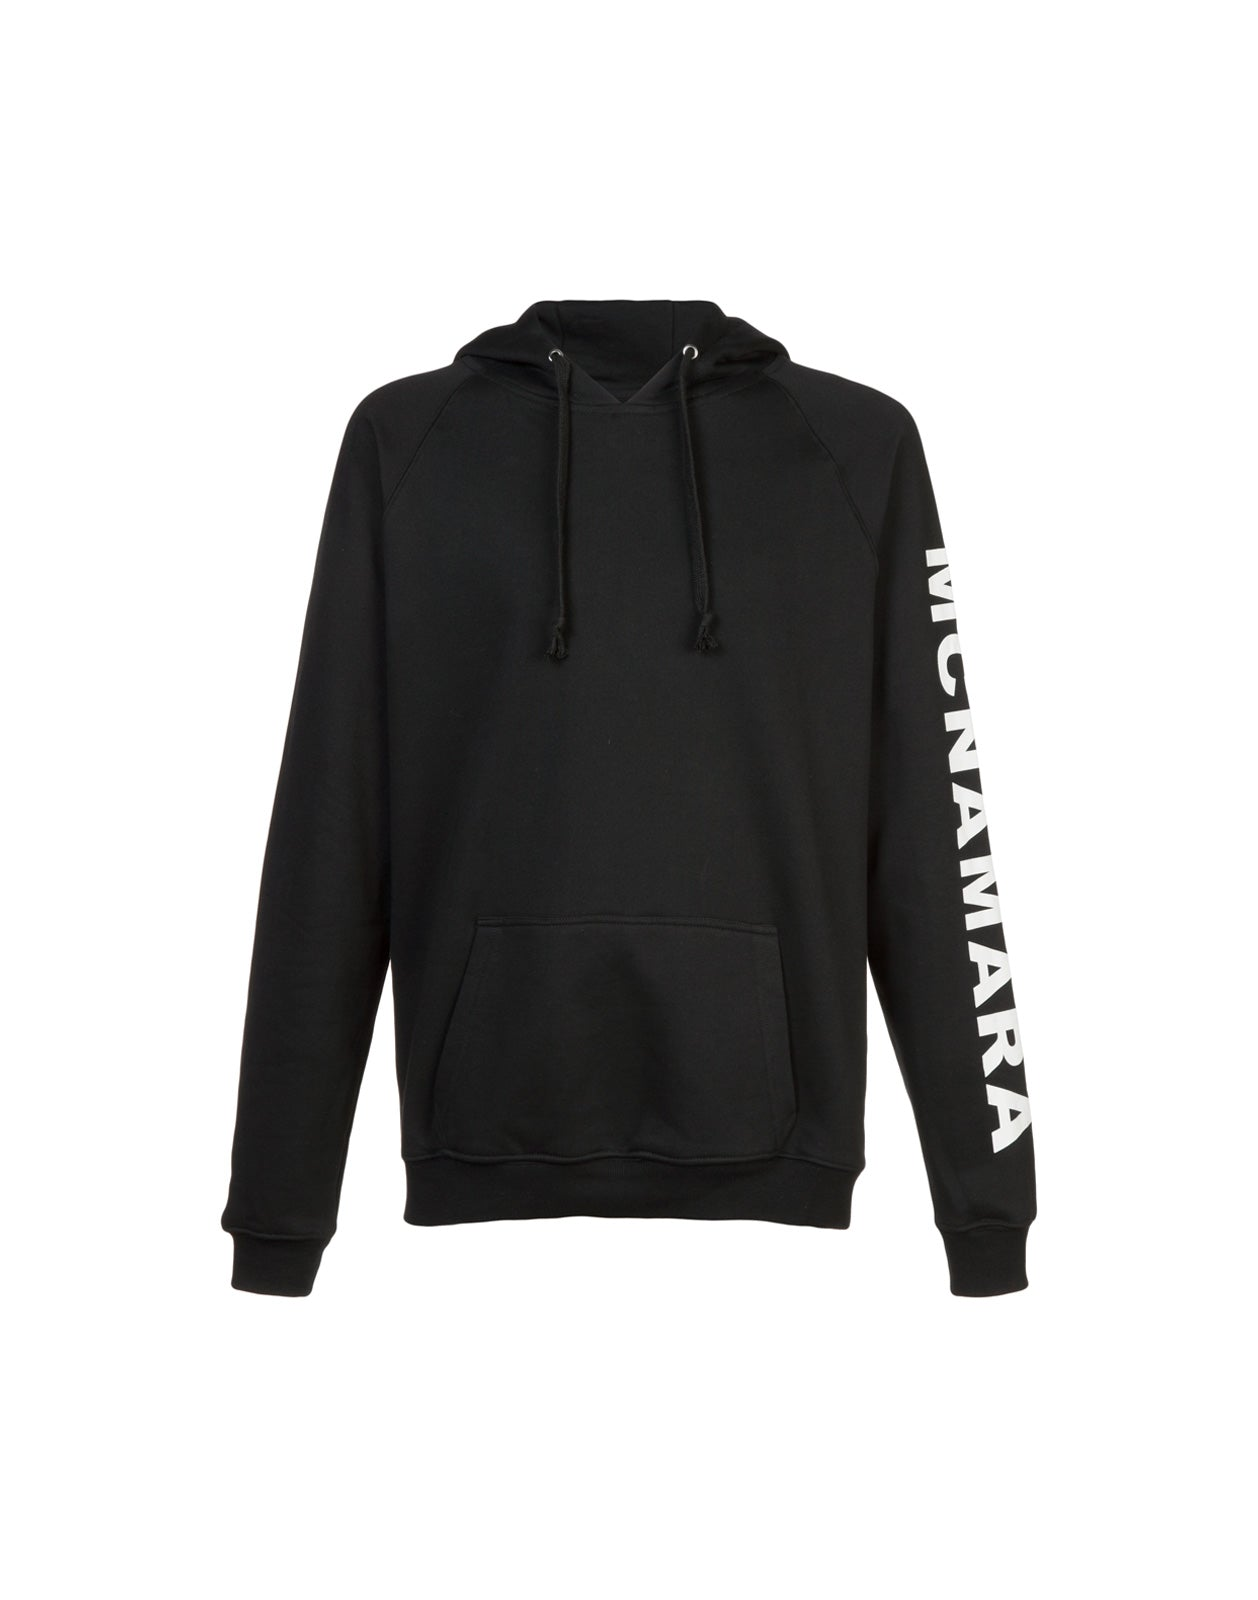 Product image of solid hoodie sweatshirt with McNamara printed down one sleeve.